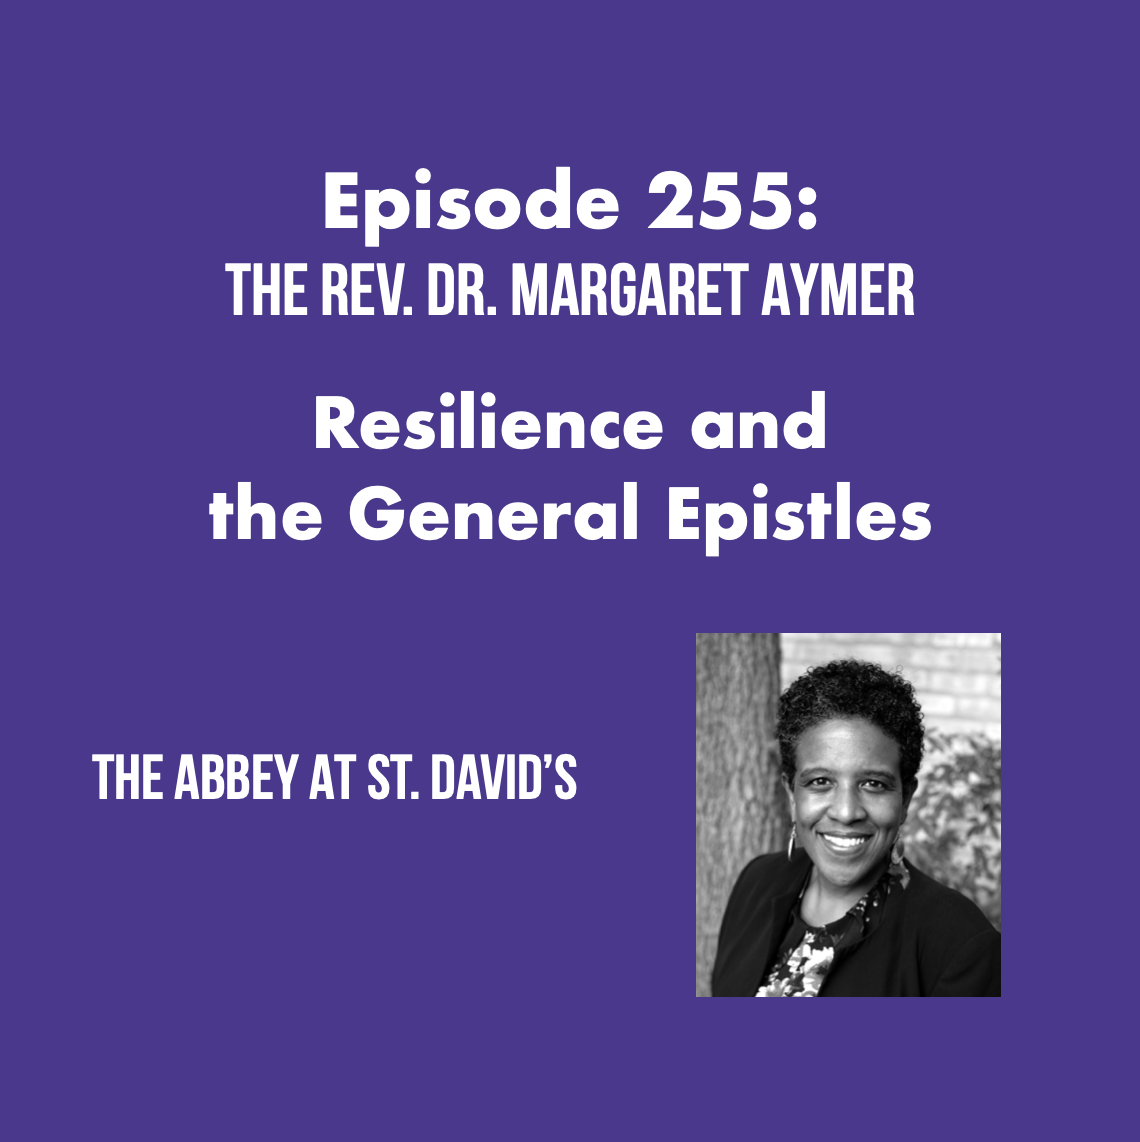 Episode 255: Resilience and the General Epistles with The Rev. Dr. Margaret Aymer